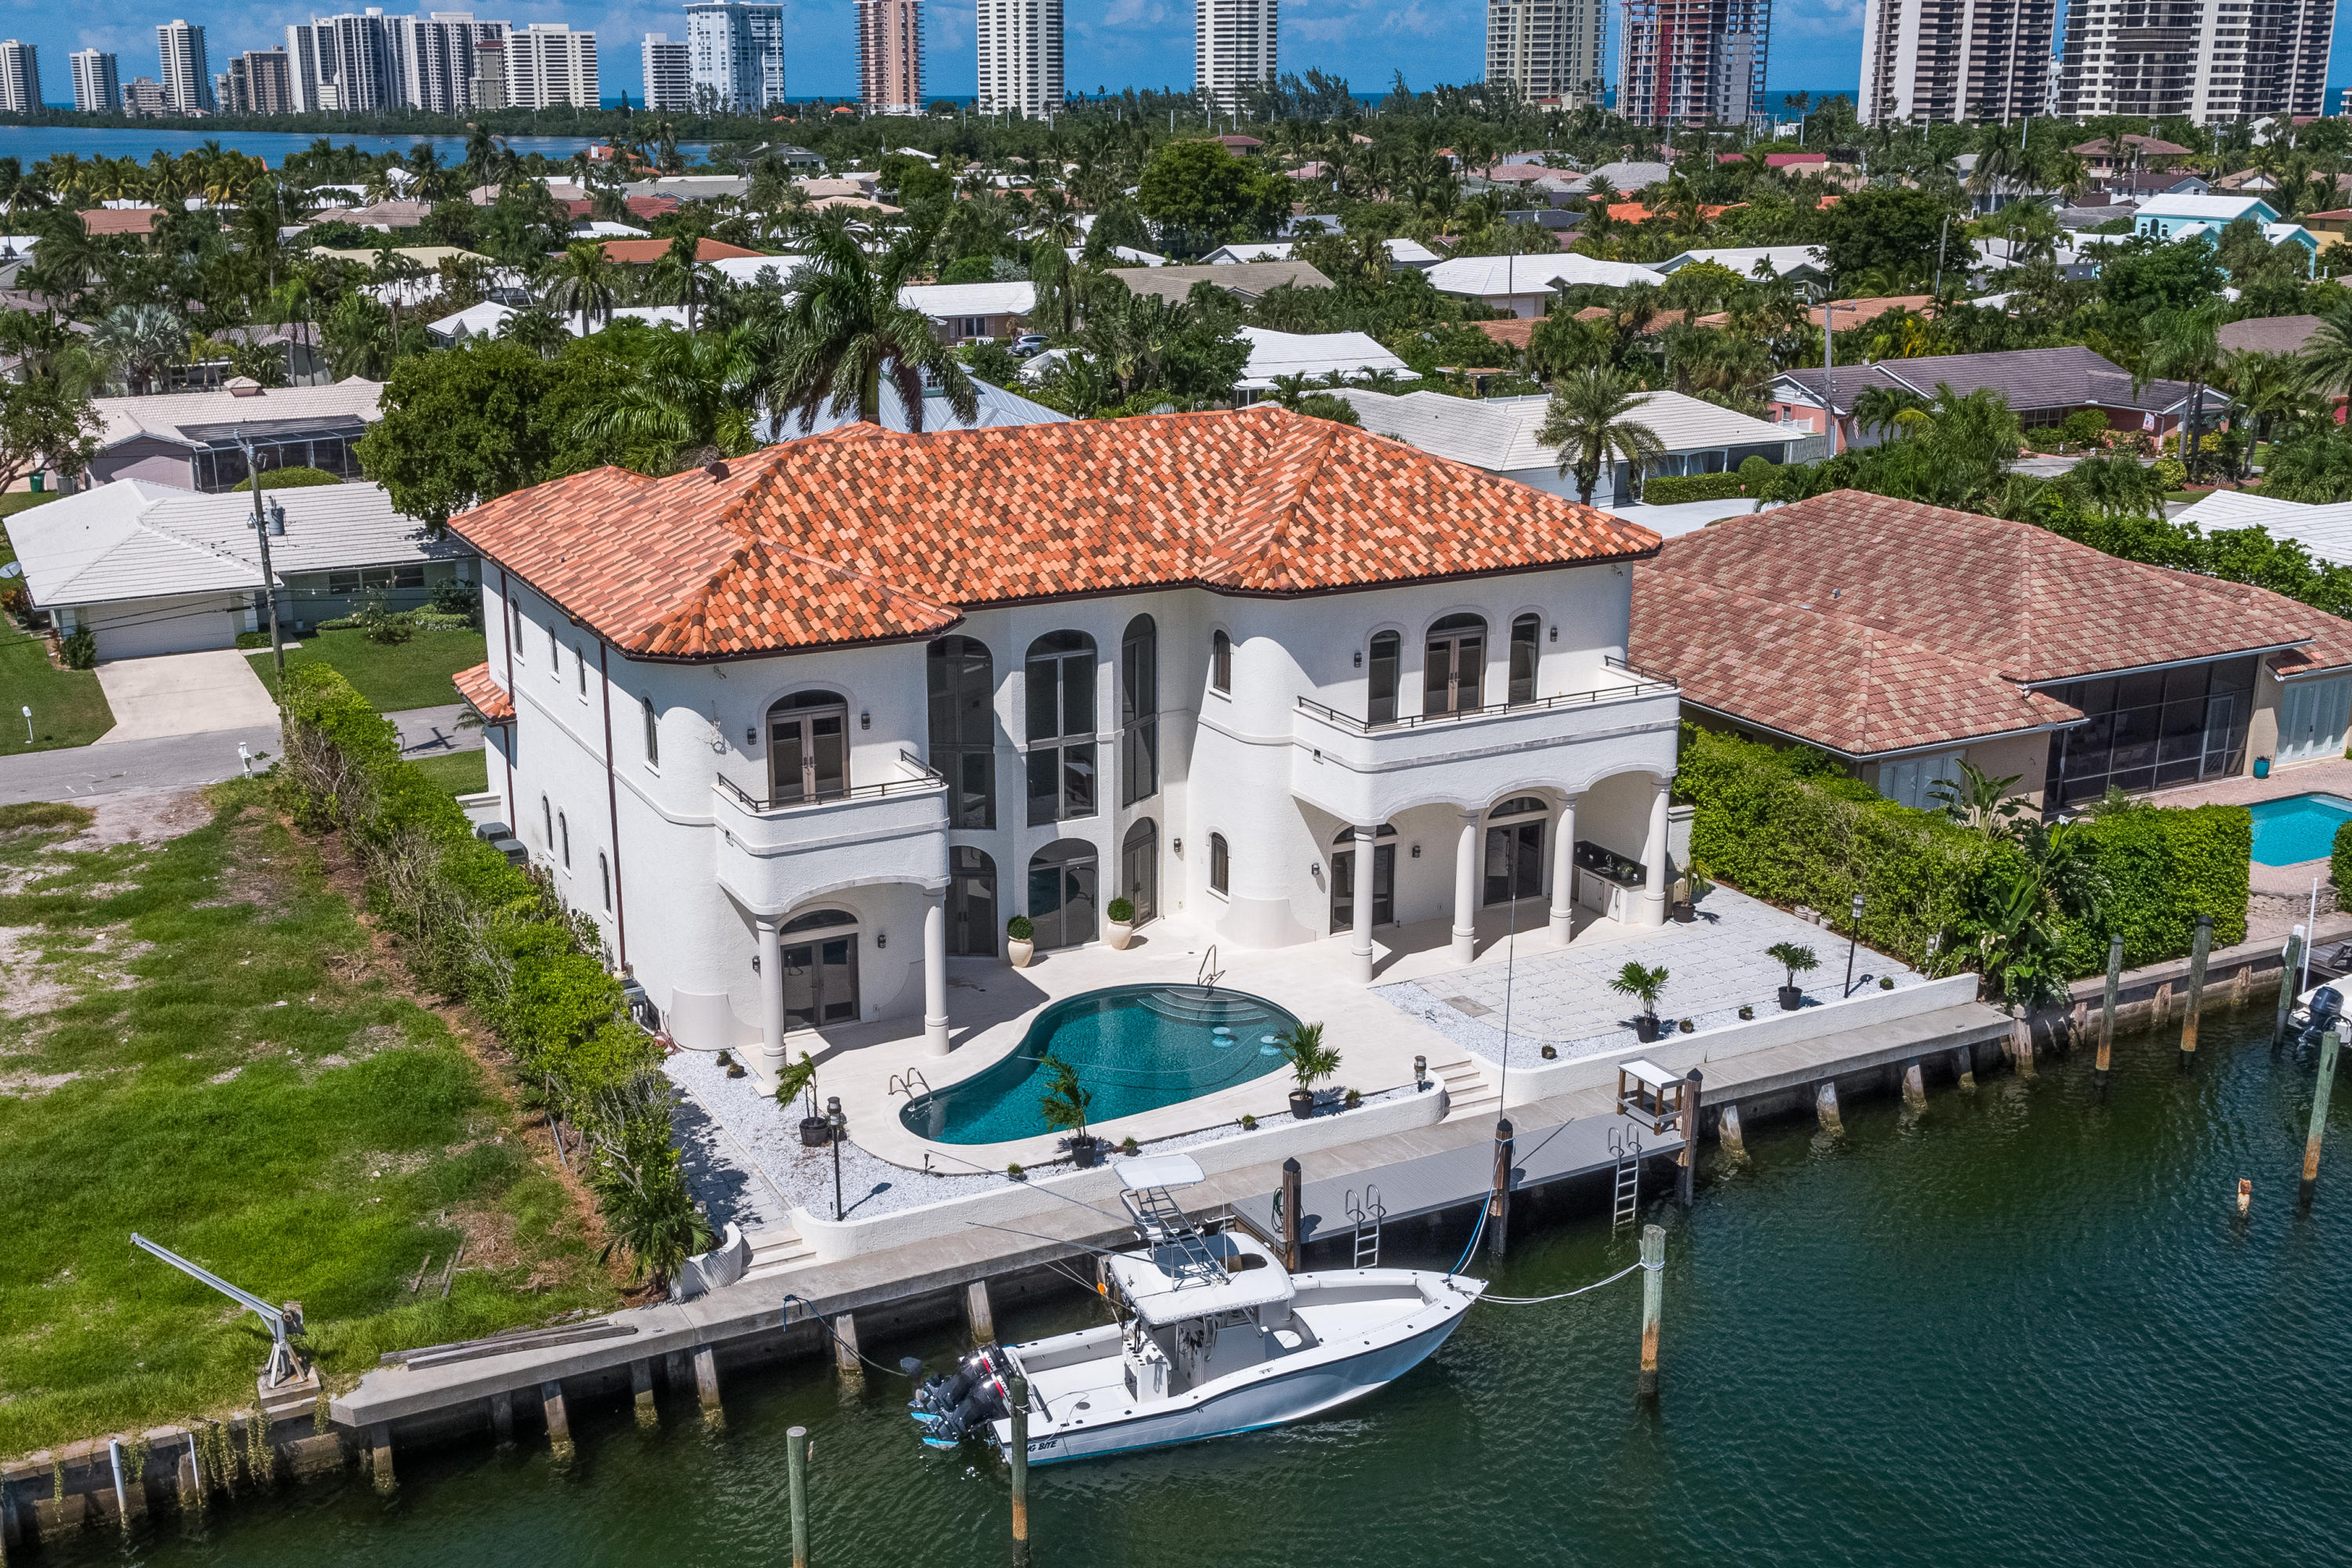 New Home for sale at 1171 Coral Way in Singer Island